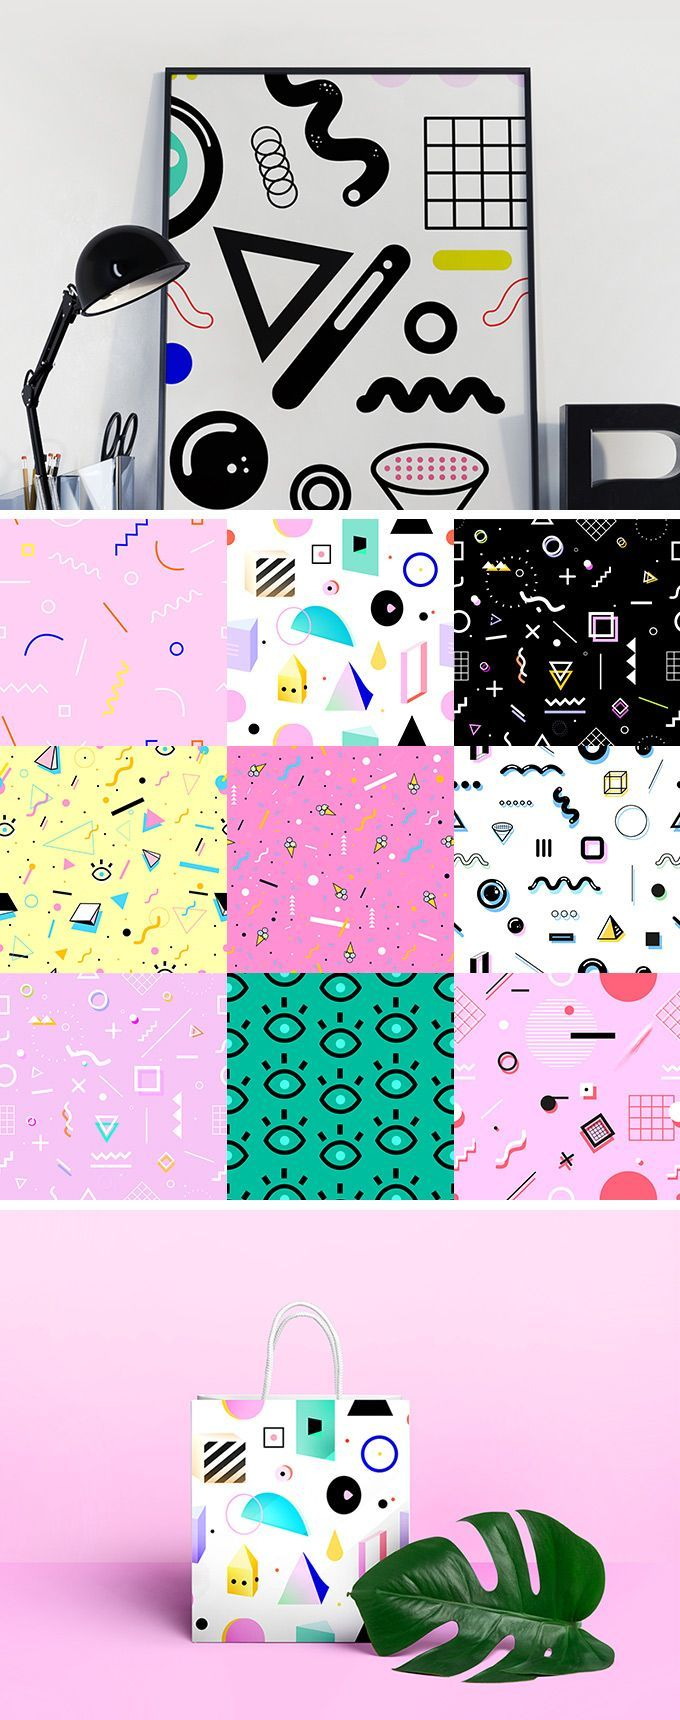 Geometric 80's Style Patterns - download freebie by PixelBuddha